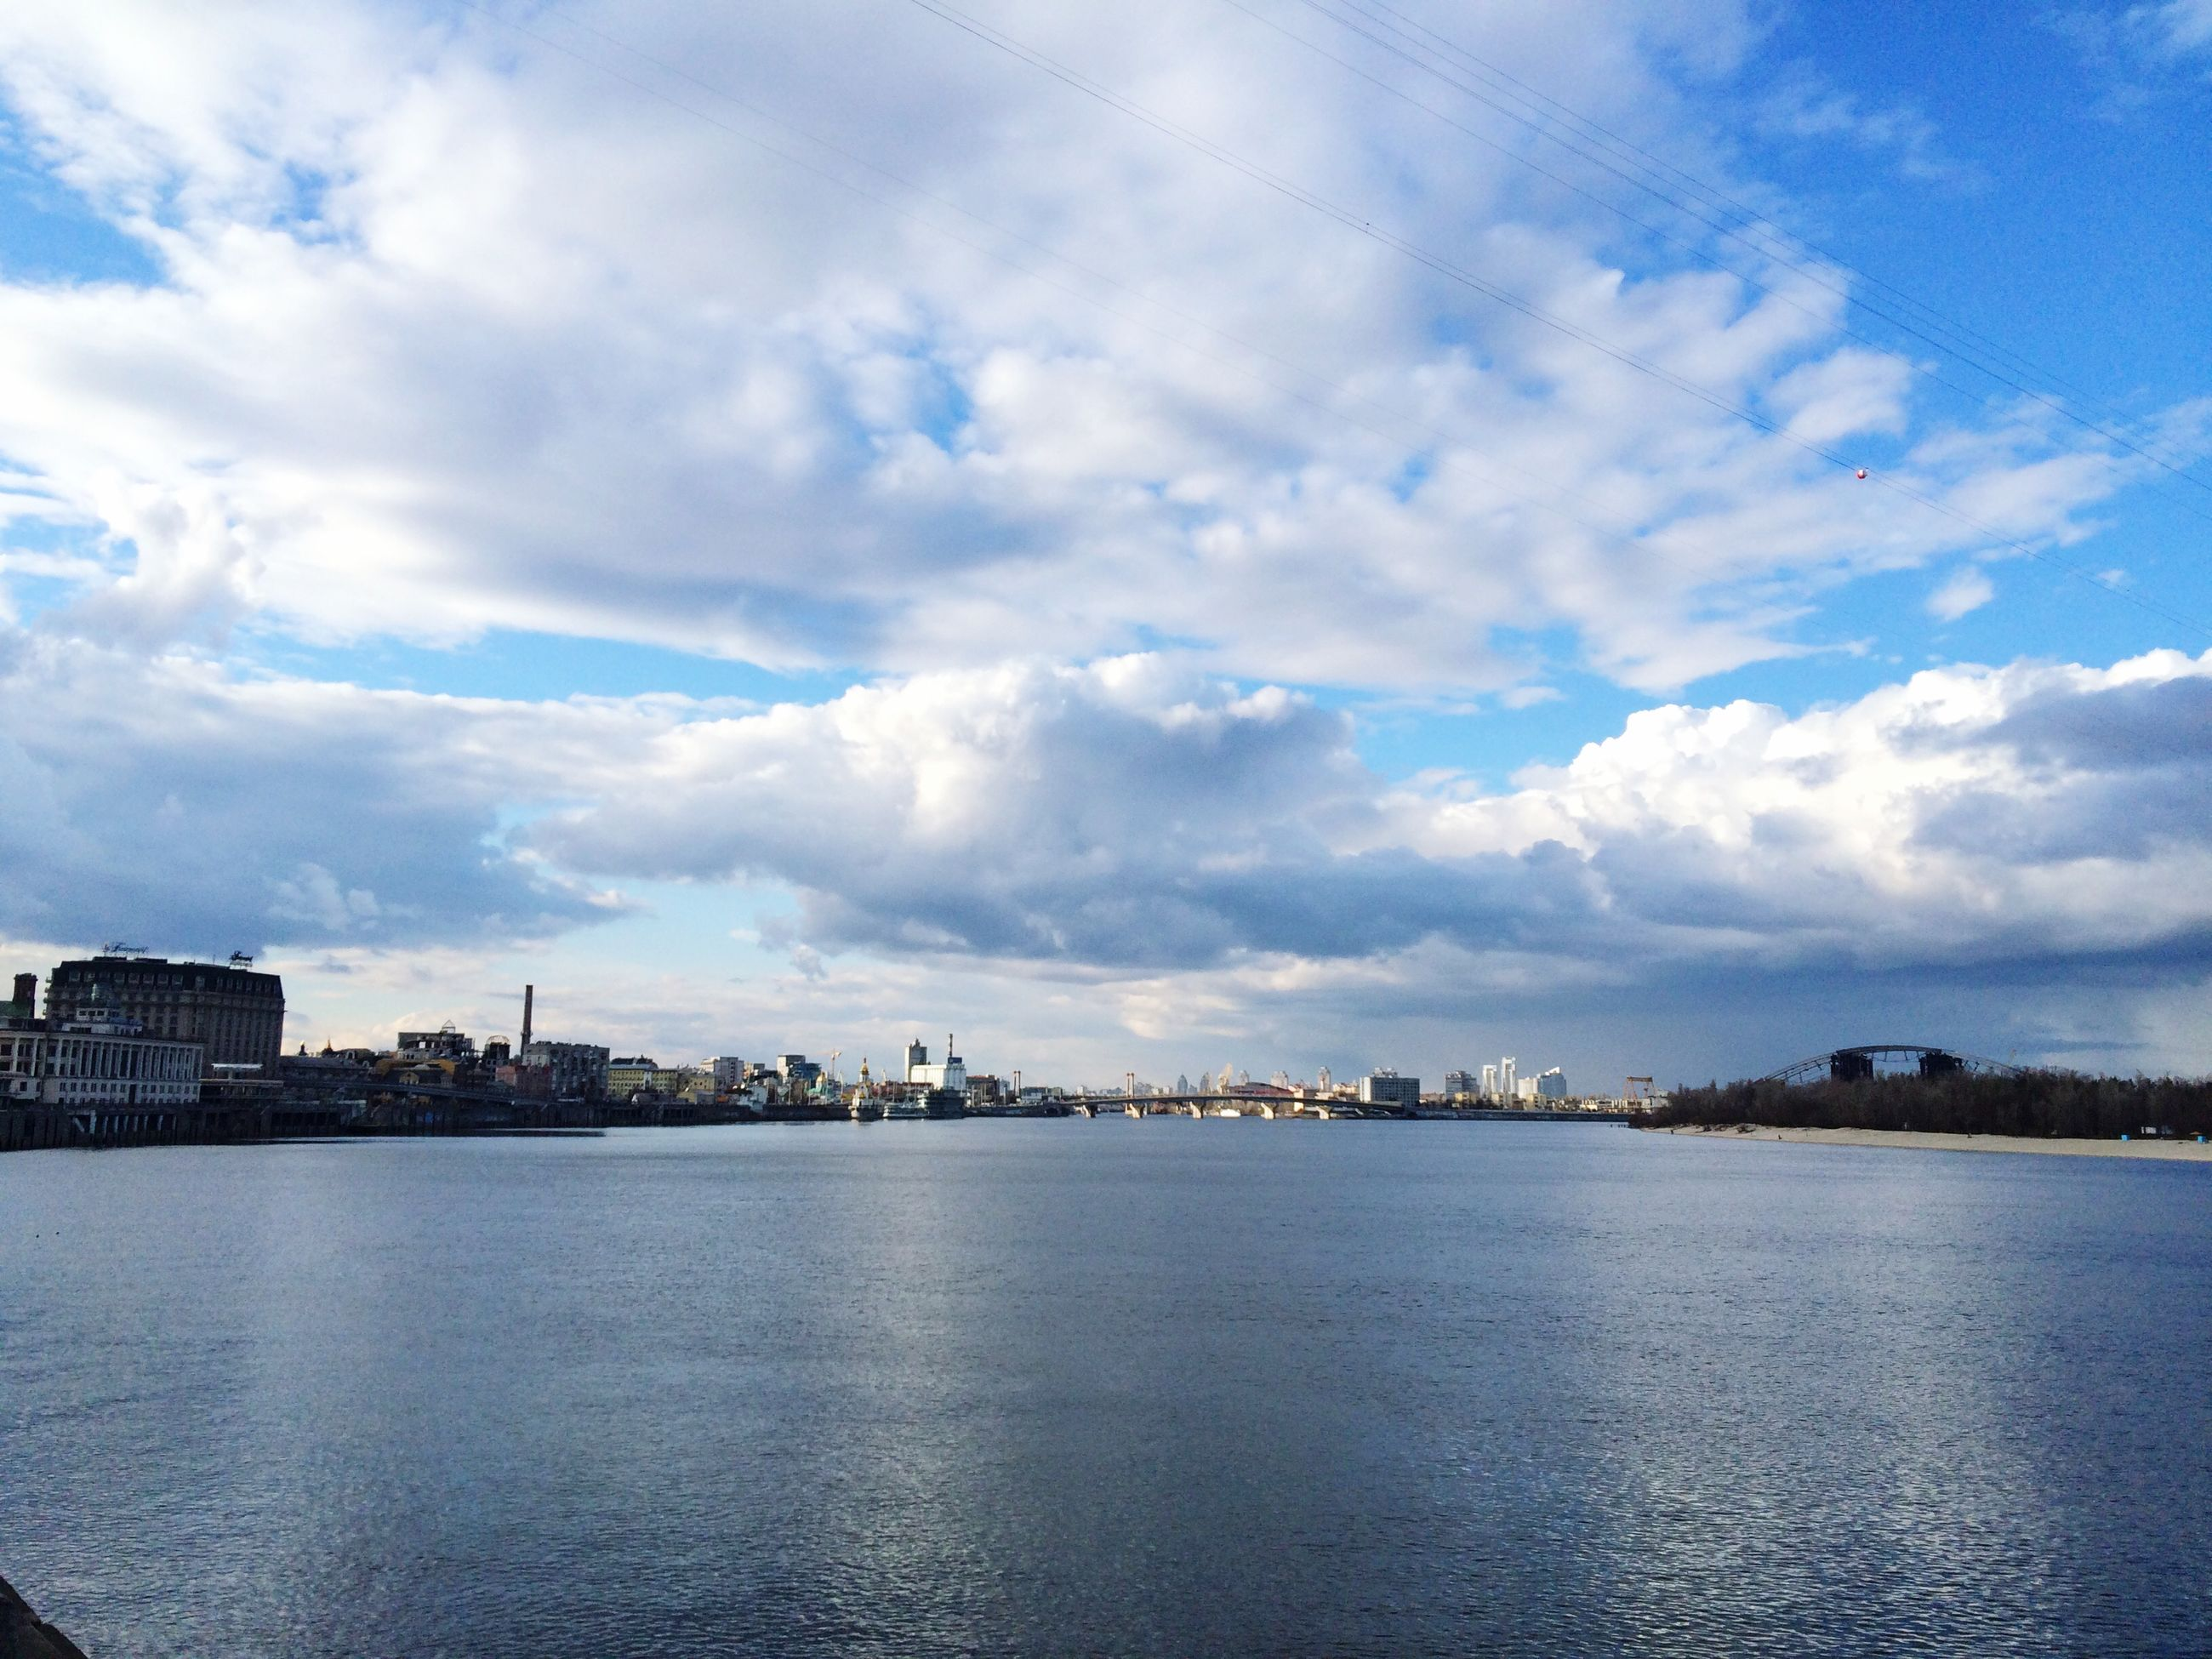 water, waterfront, sky, sea, cloud - sky, building exterior, architecture, built structure, cloud, city, rippled, river, cityscape, cloudy, blue, scenics, tranquility, tranquil scene, nature, beauty in nature